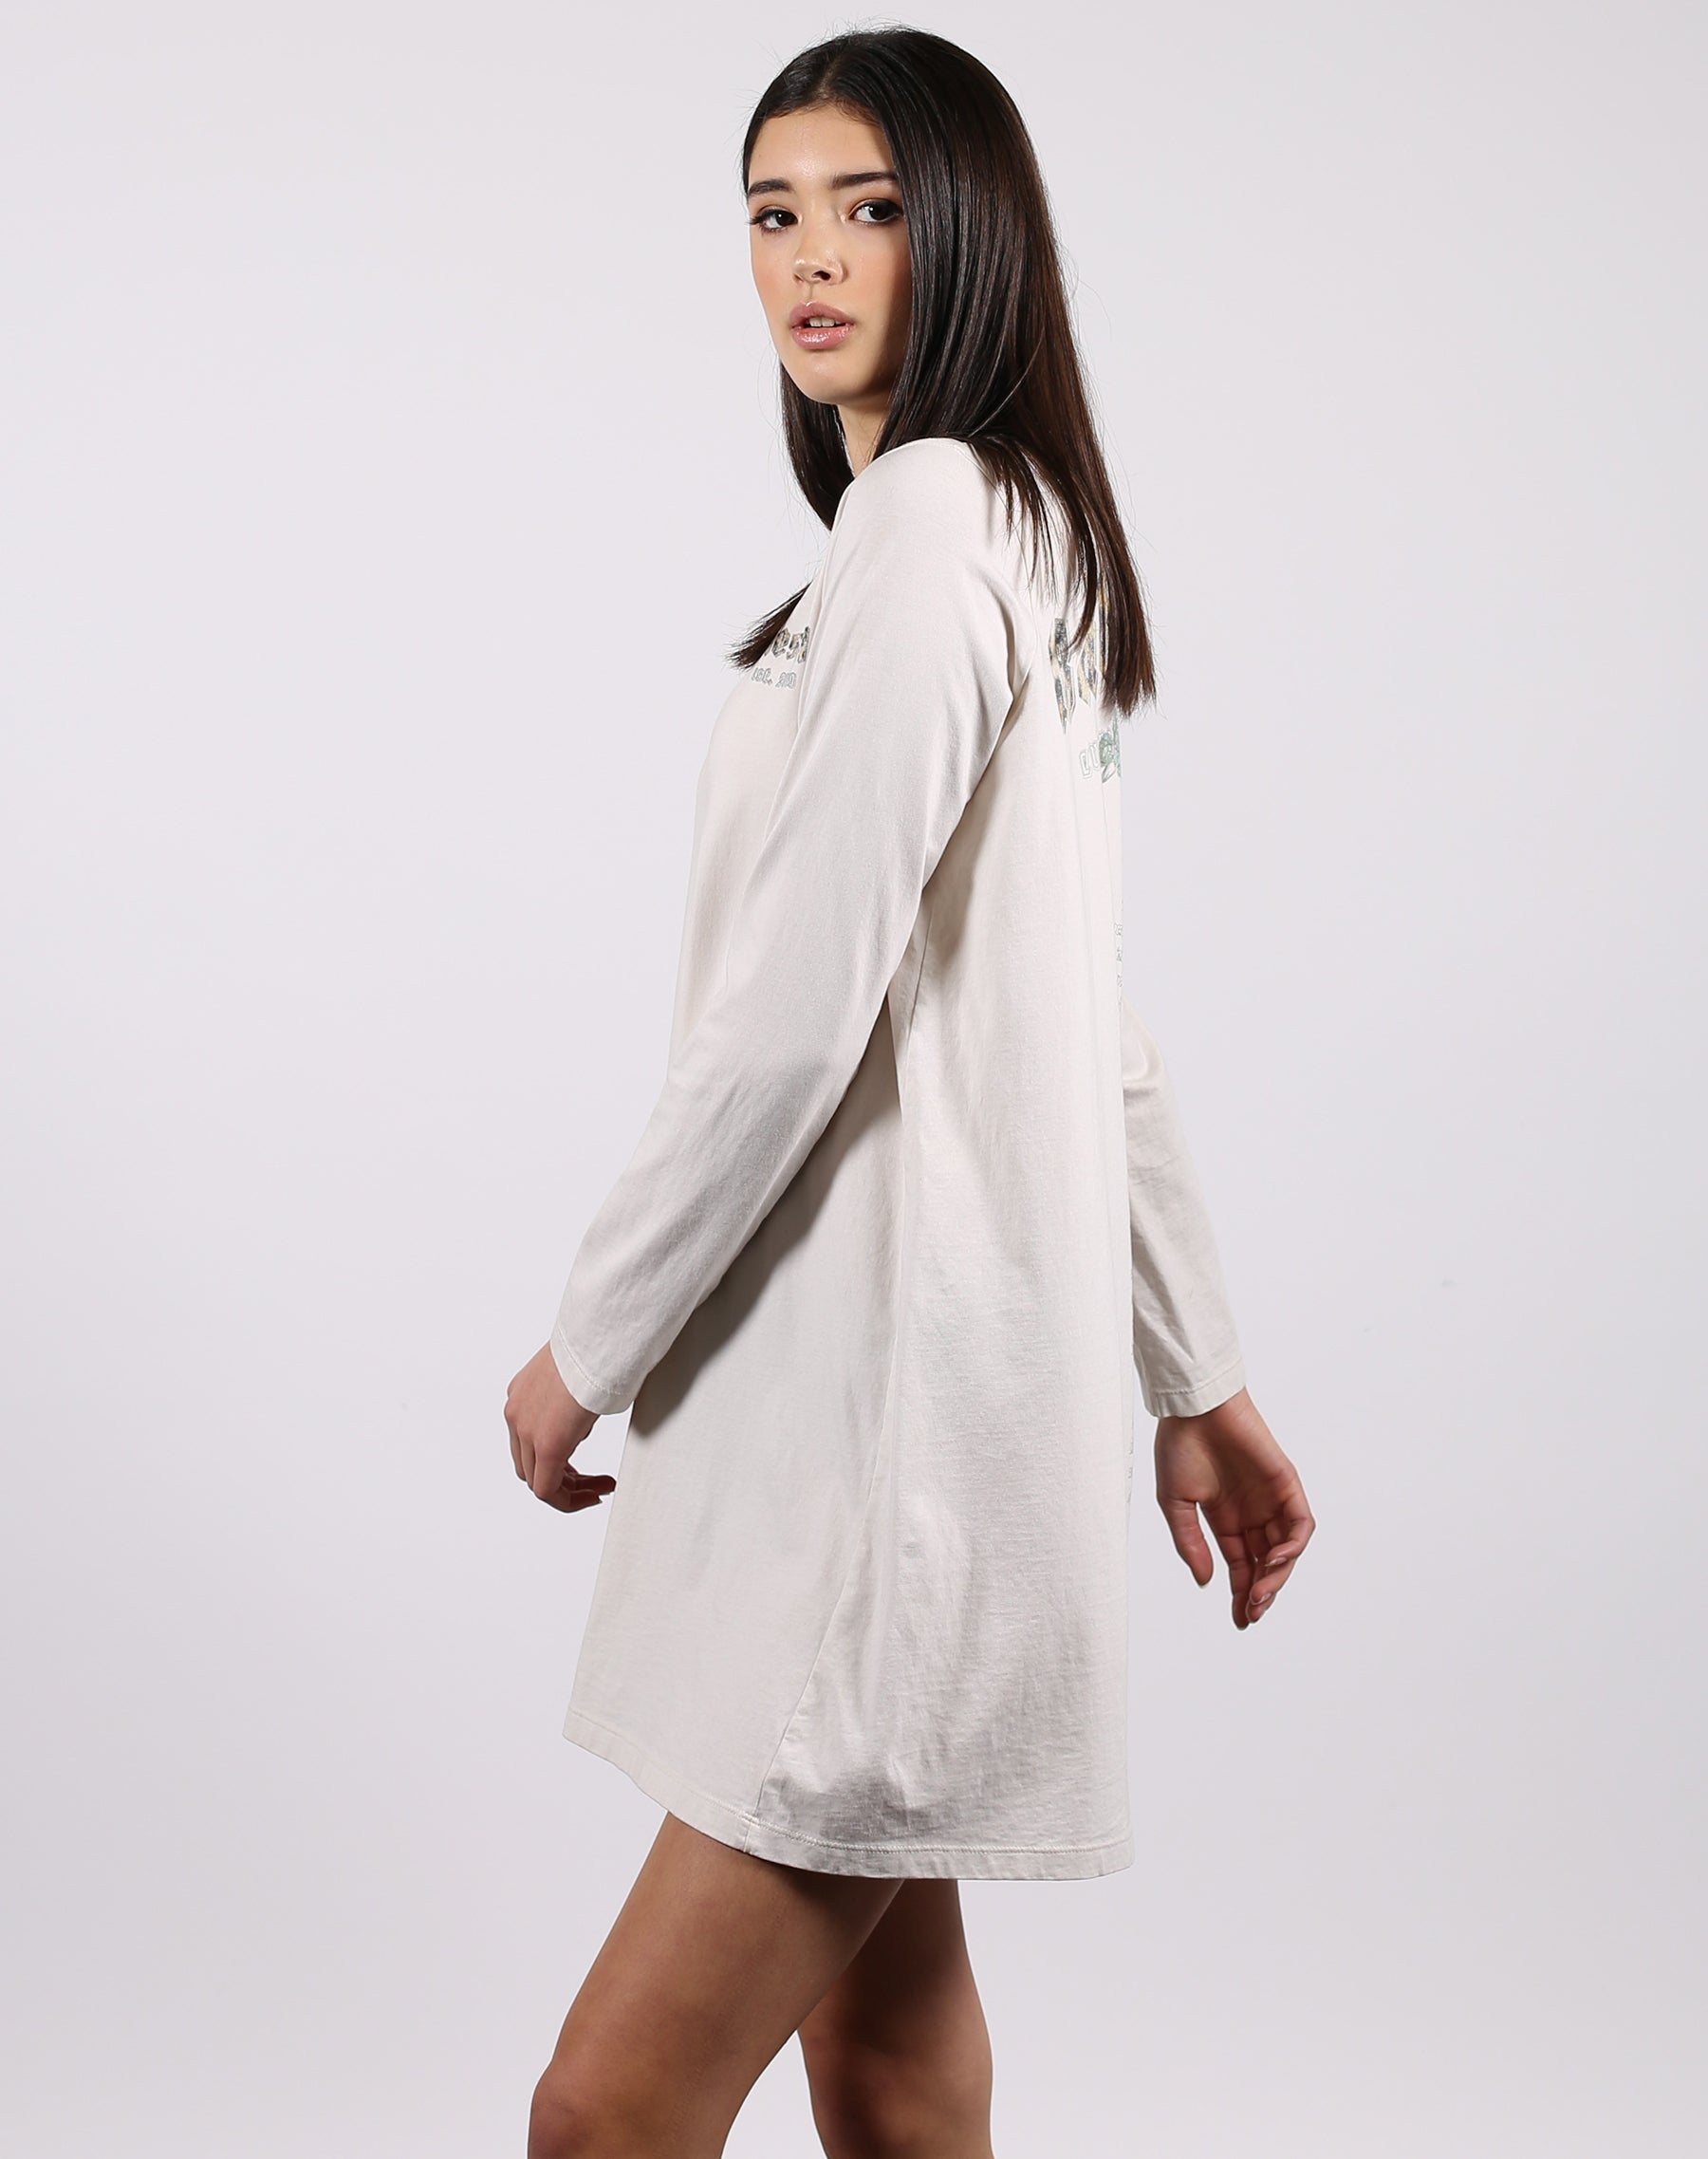 This is a photo of a model wearing the babes club dress in marshmallow by Brunette the Label.